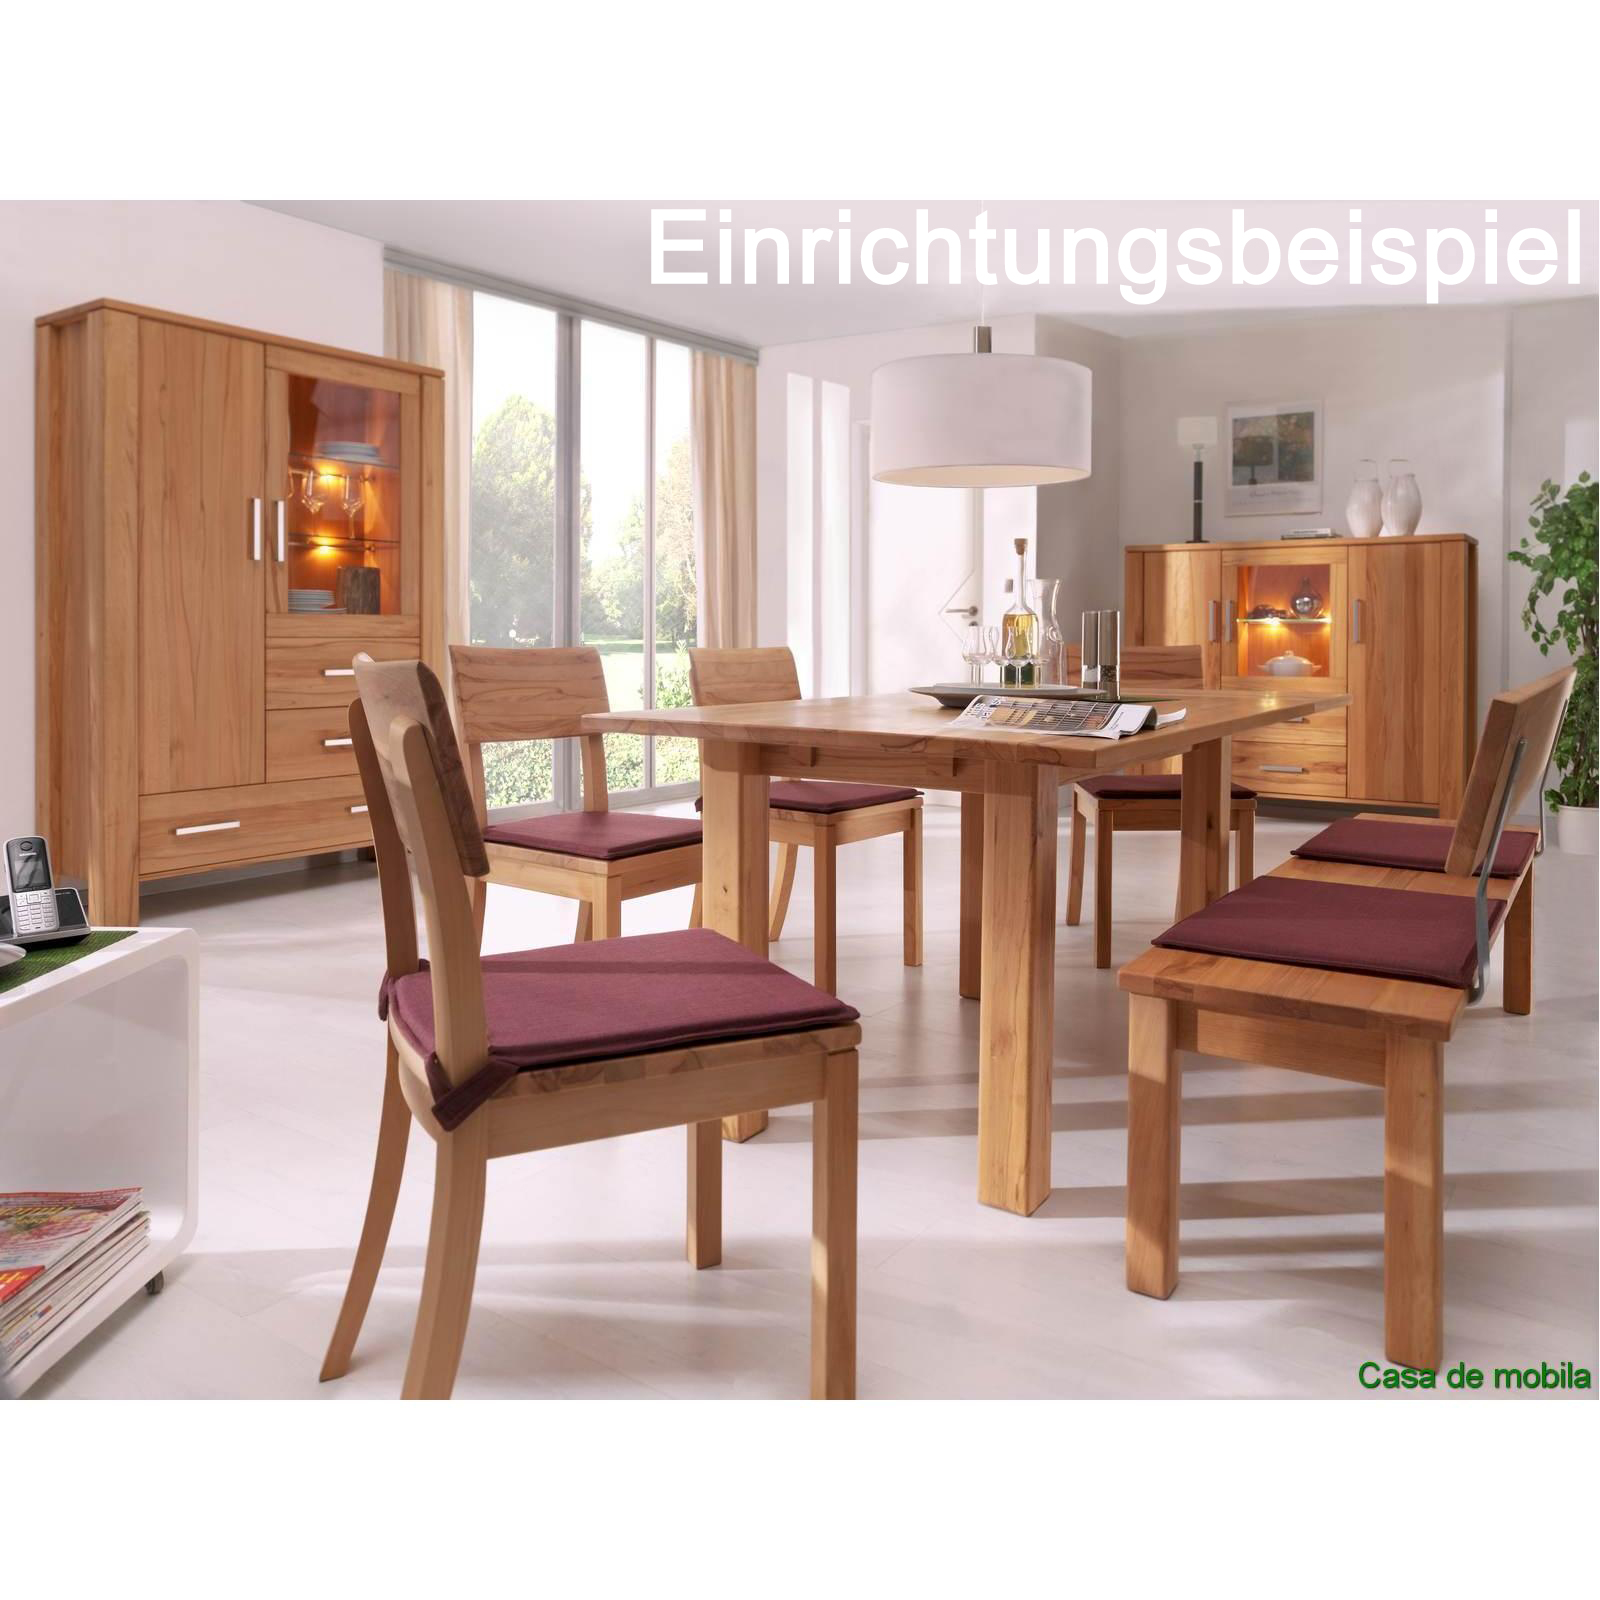 massivholz sitzbank mit r ckenlehne 200 cm buche massiv ge lt bank mit lehne ebay. Black Bedroom Furniture Sets. Home Design Ideas